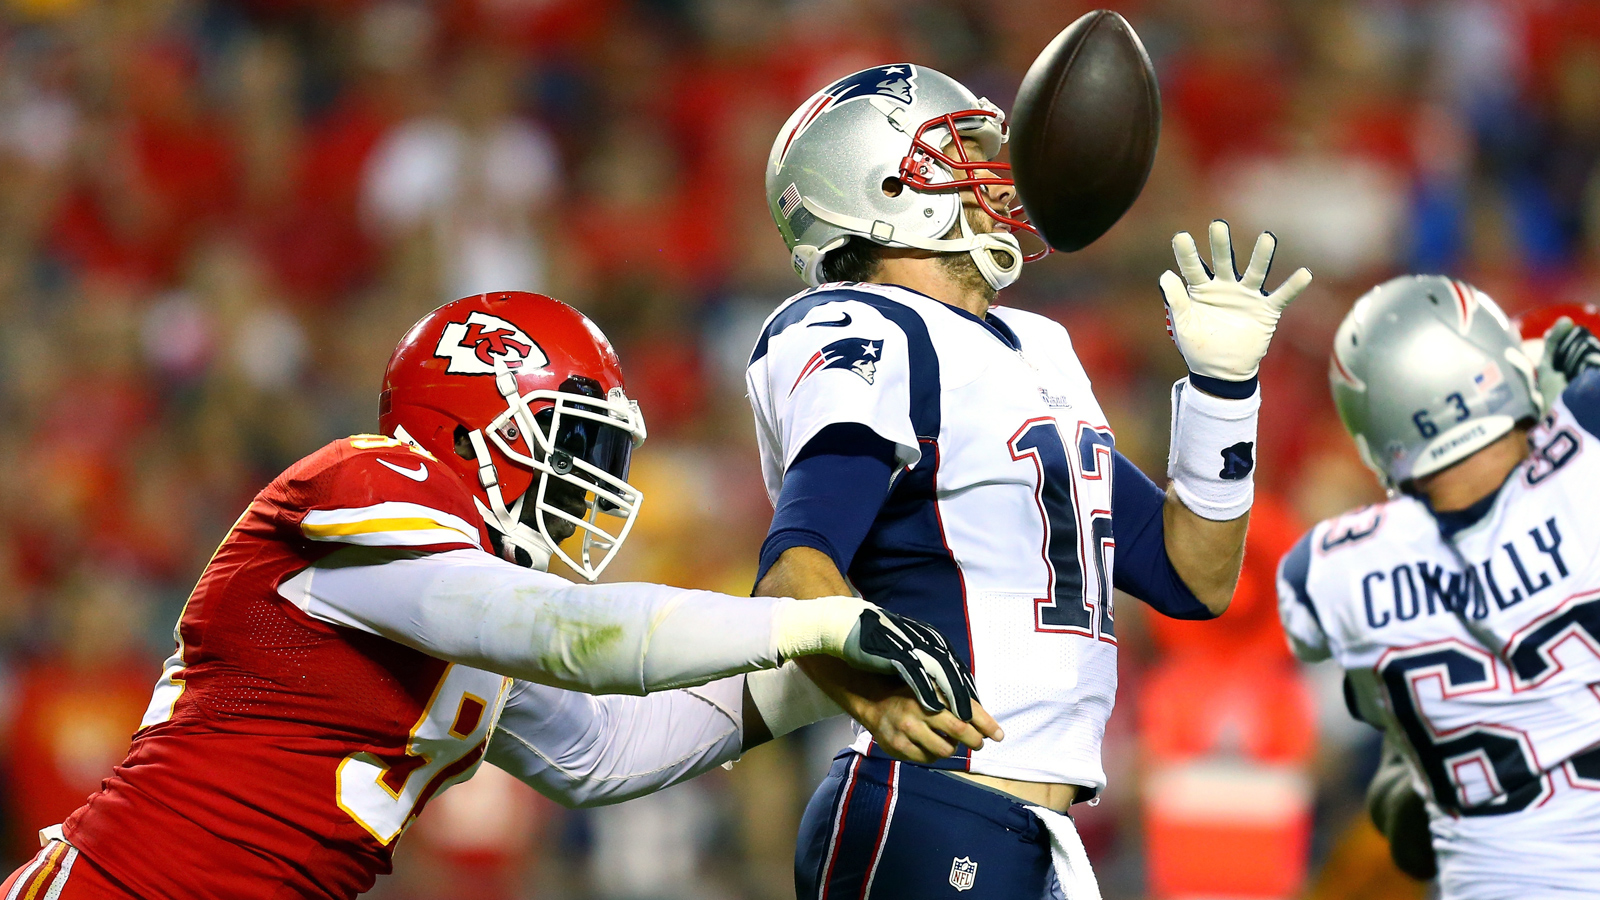 Play it again: Looking back at the last matchup between the Patriots and Chiefs